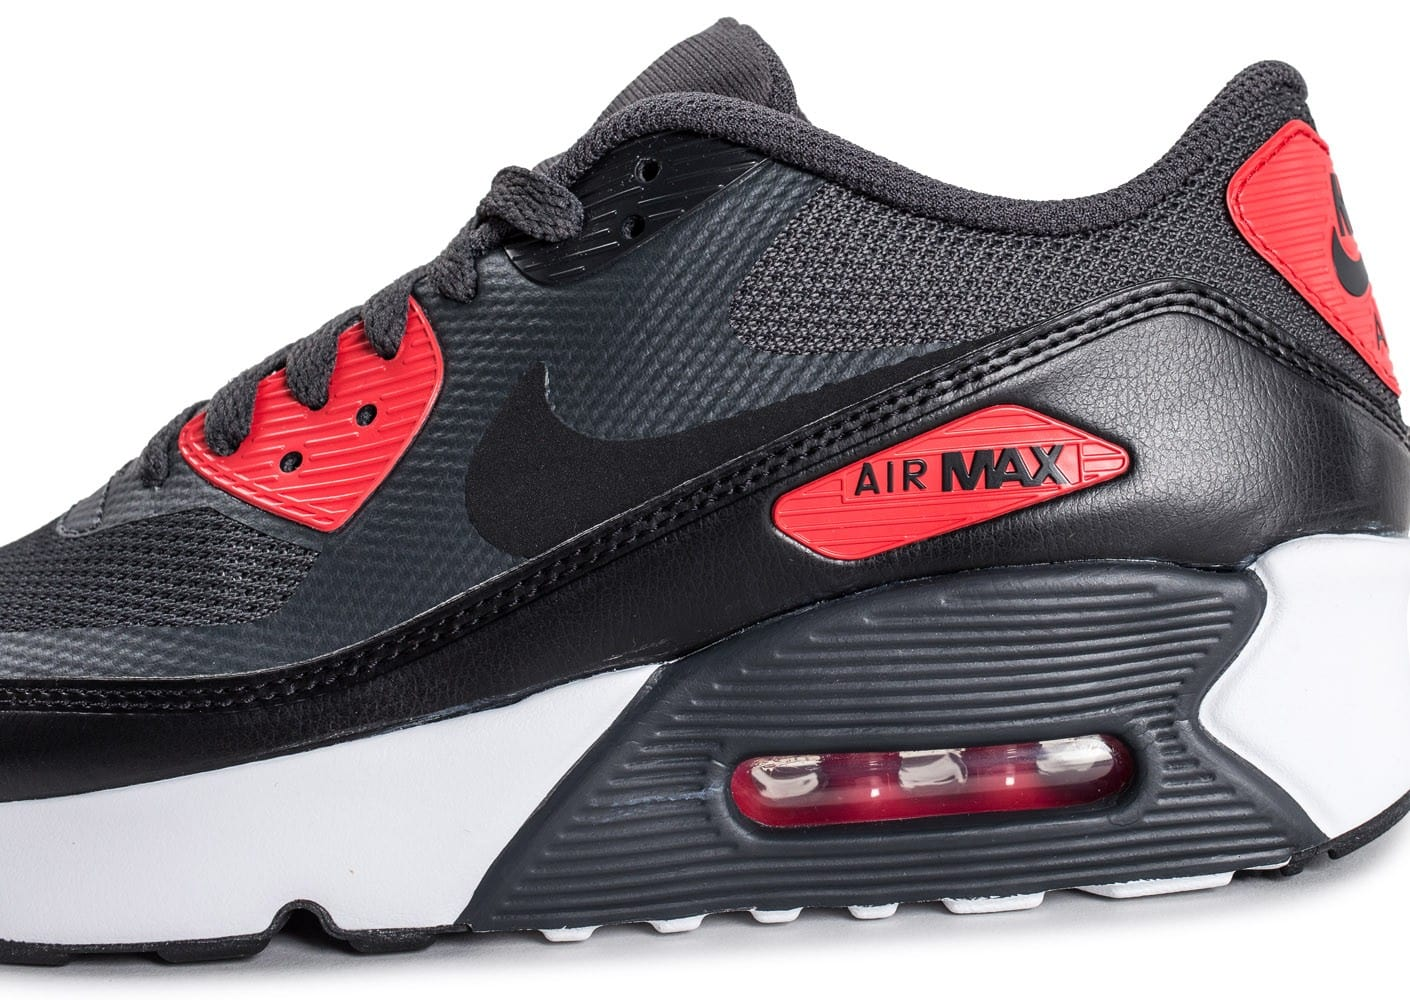 official photos 8d069 40aed ... Chaussures Nike Air Max 90 Ultra 2.0 Junior Anthracite et rouge vue  dessus